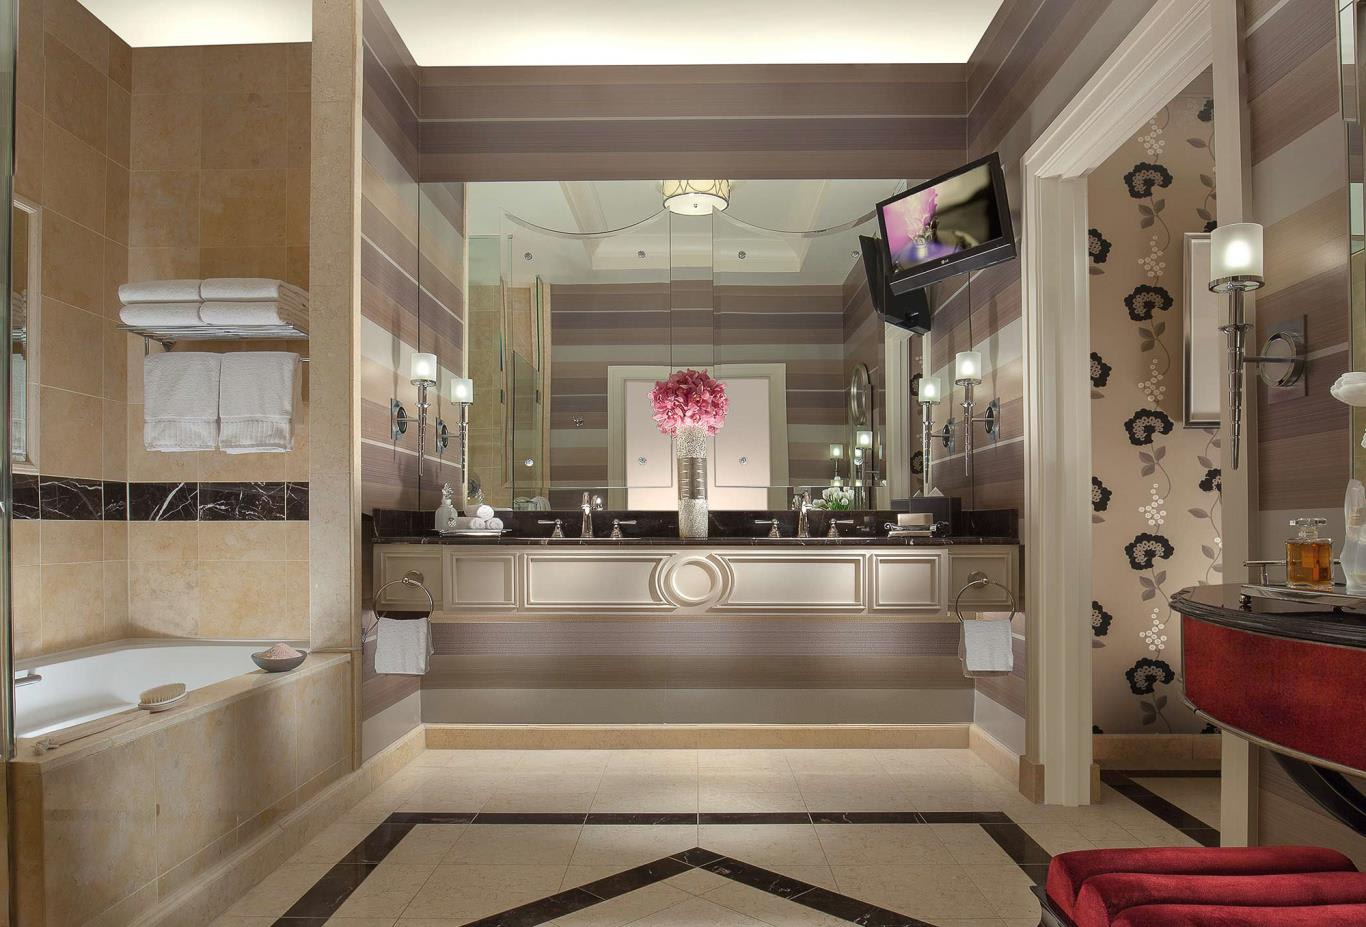 Bella Suite bathroom